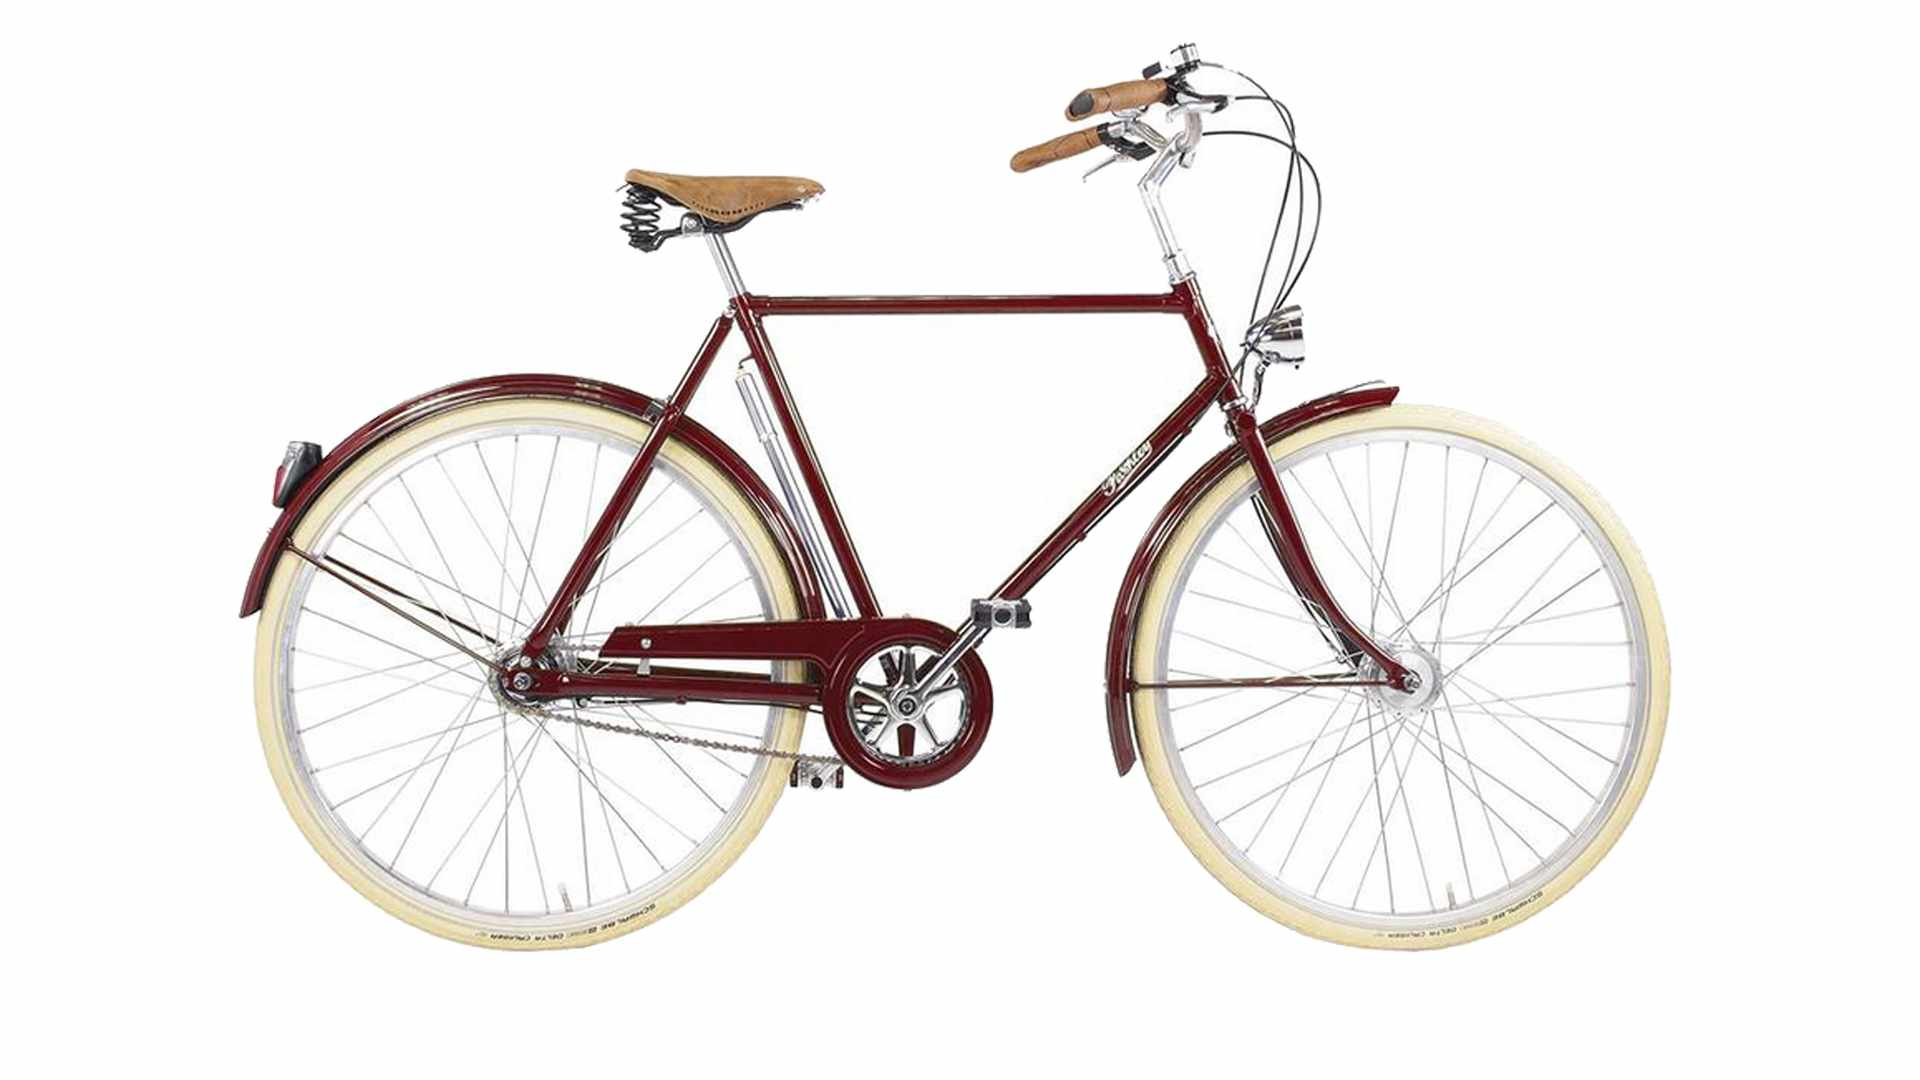 Maroon bicycle with beige wheels on a white background